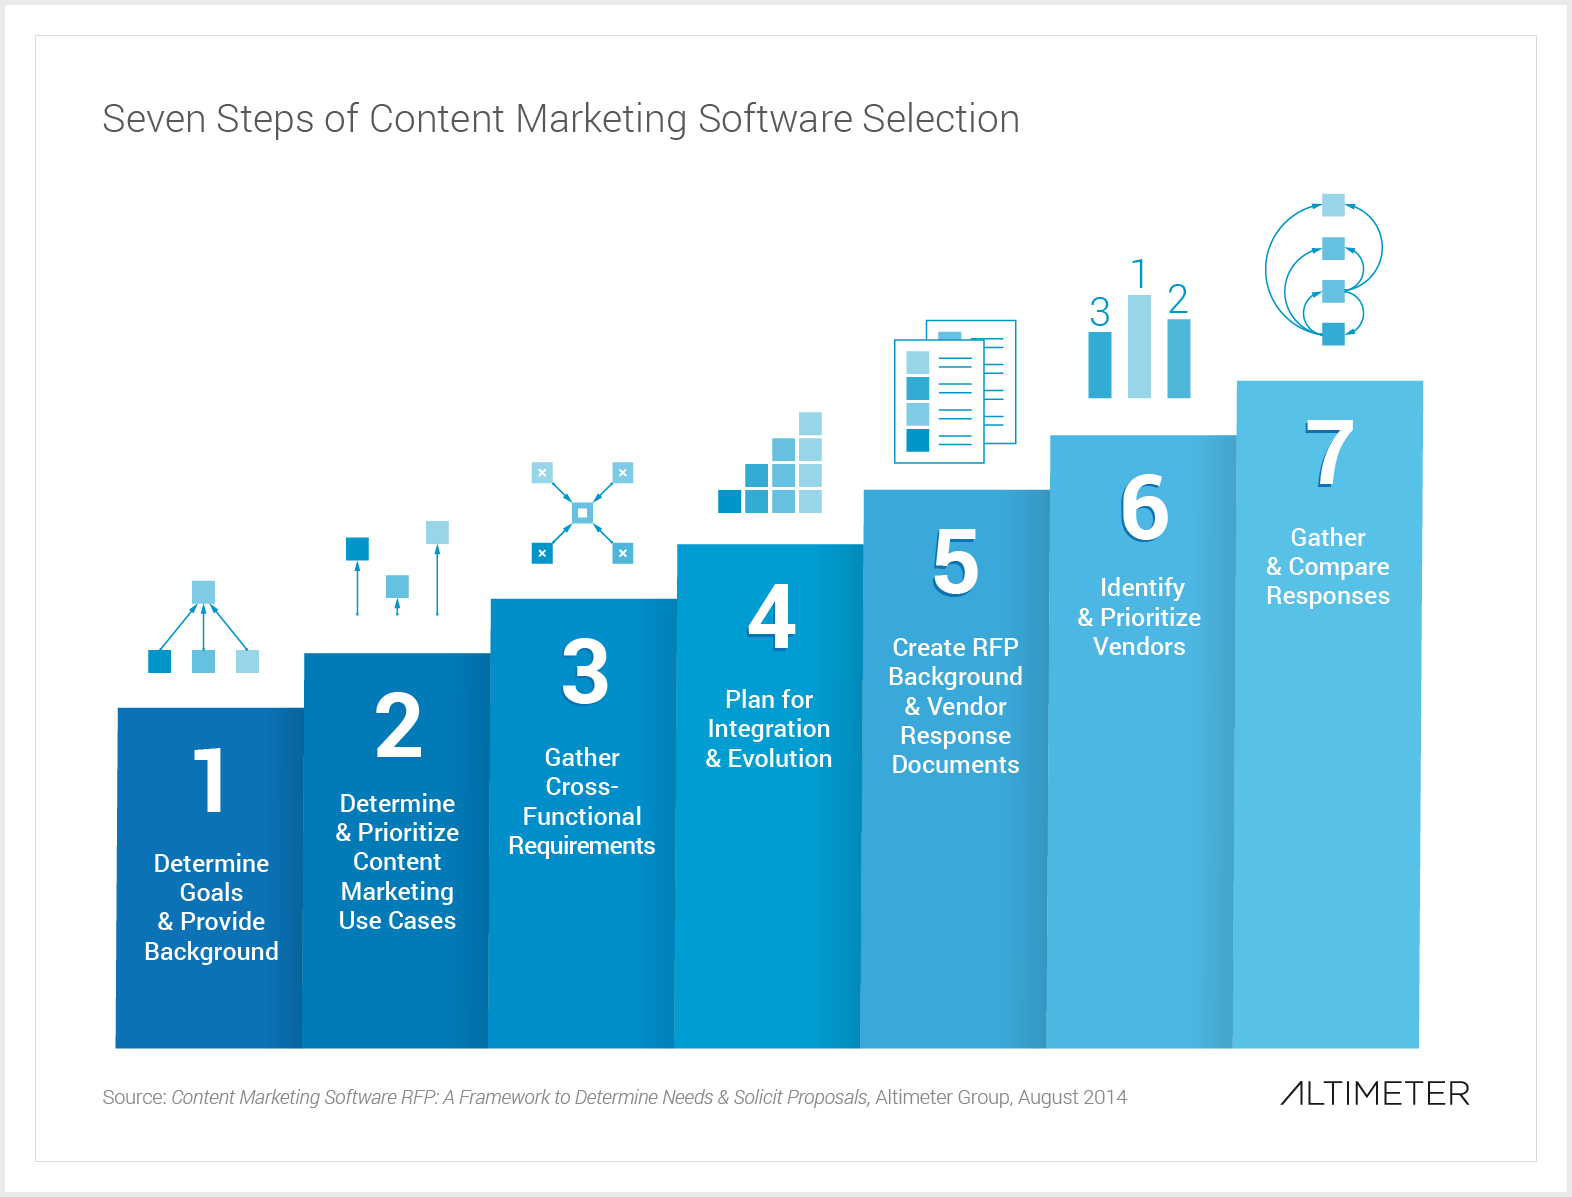 Seven Steps of Content Software Selection